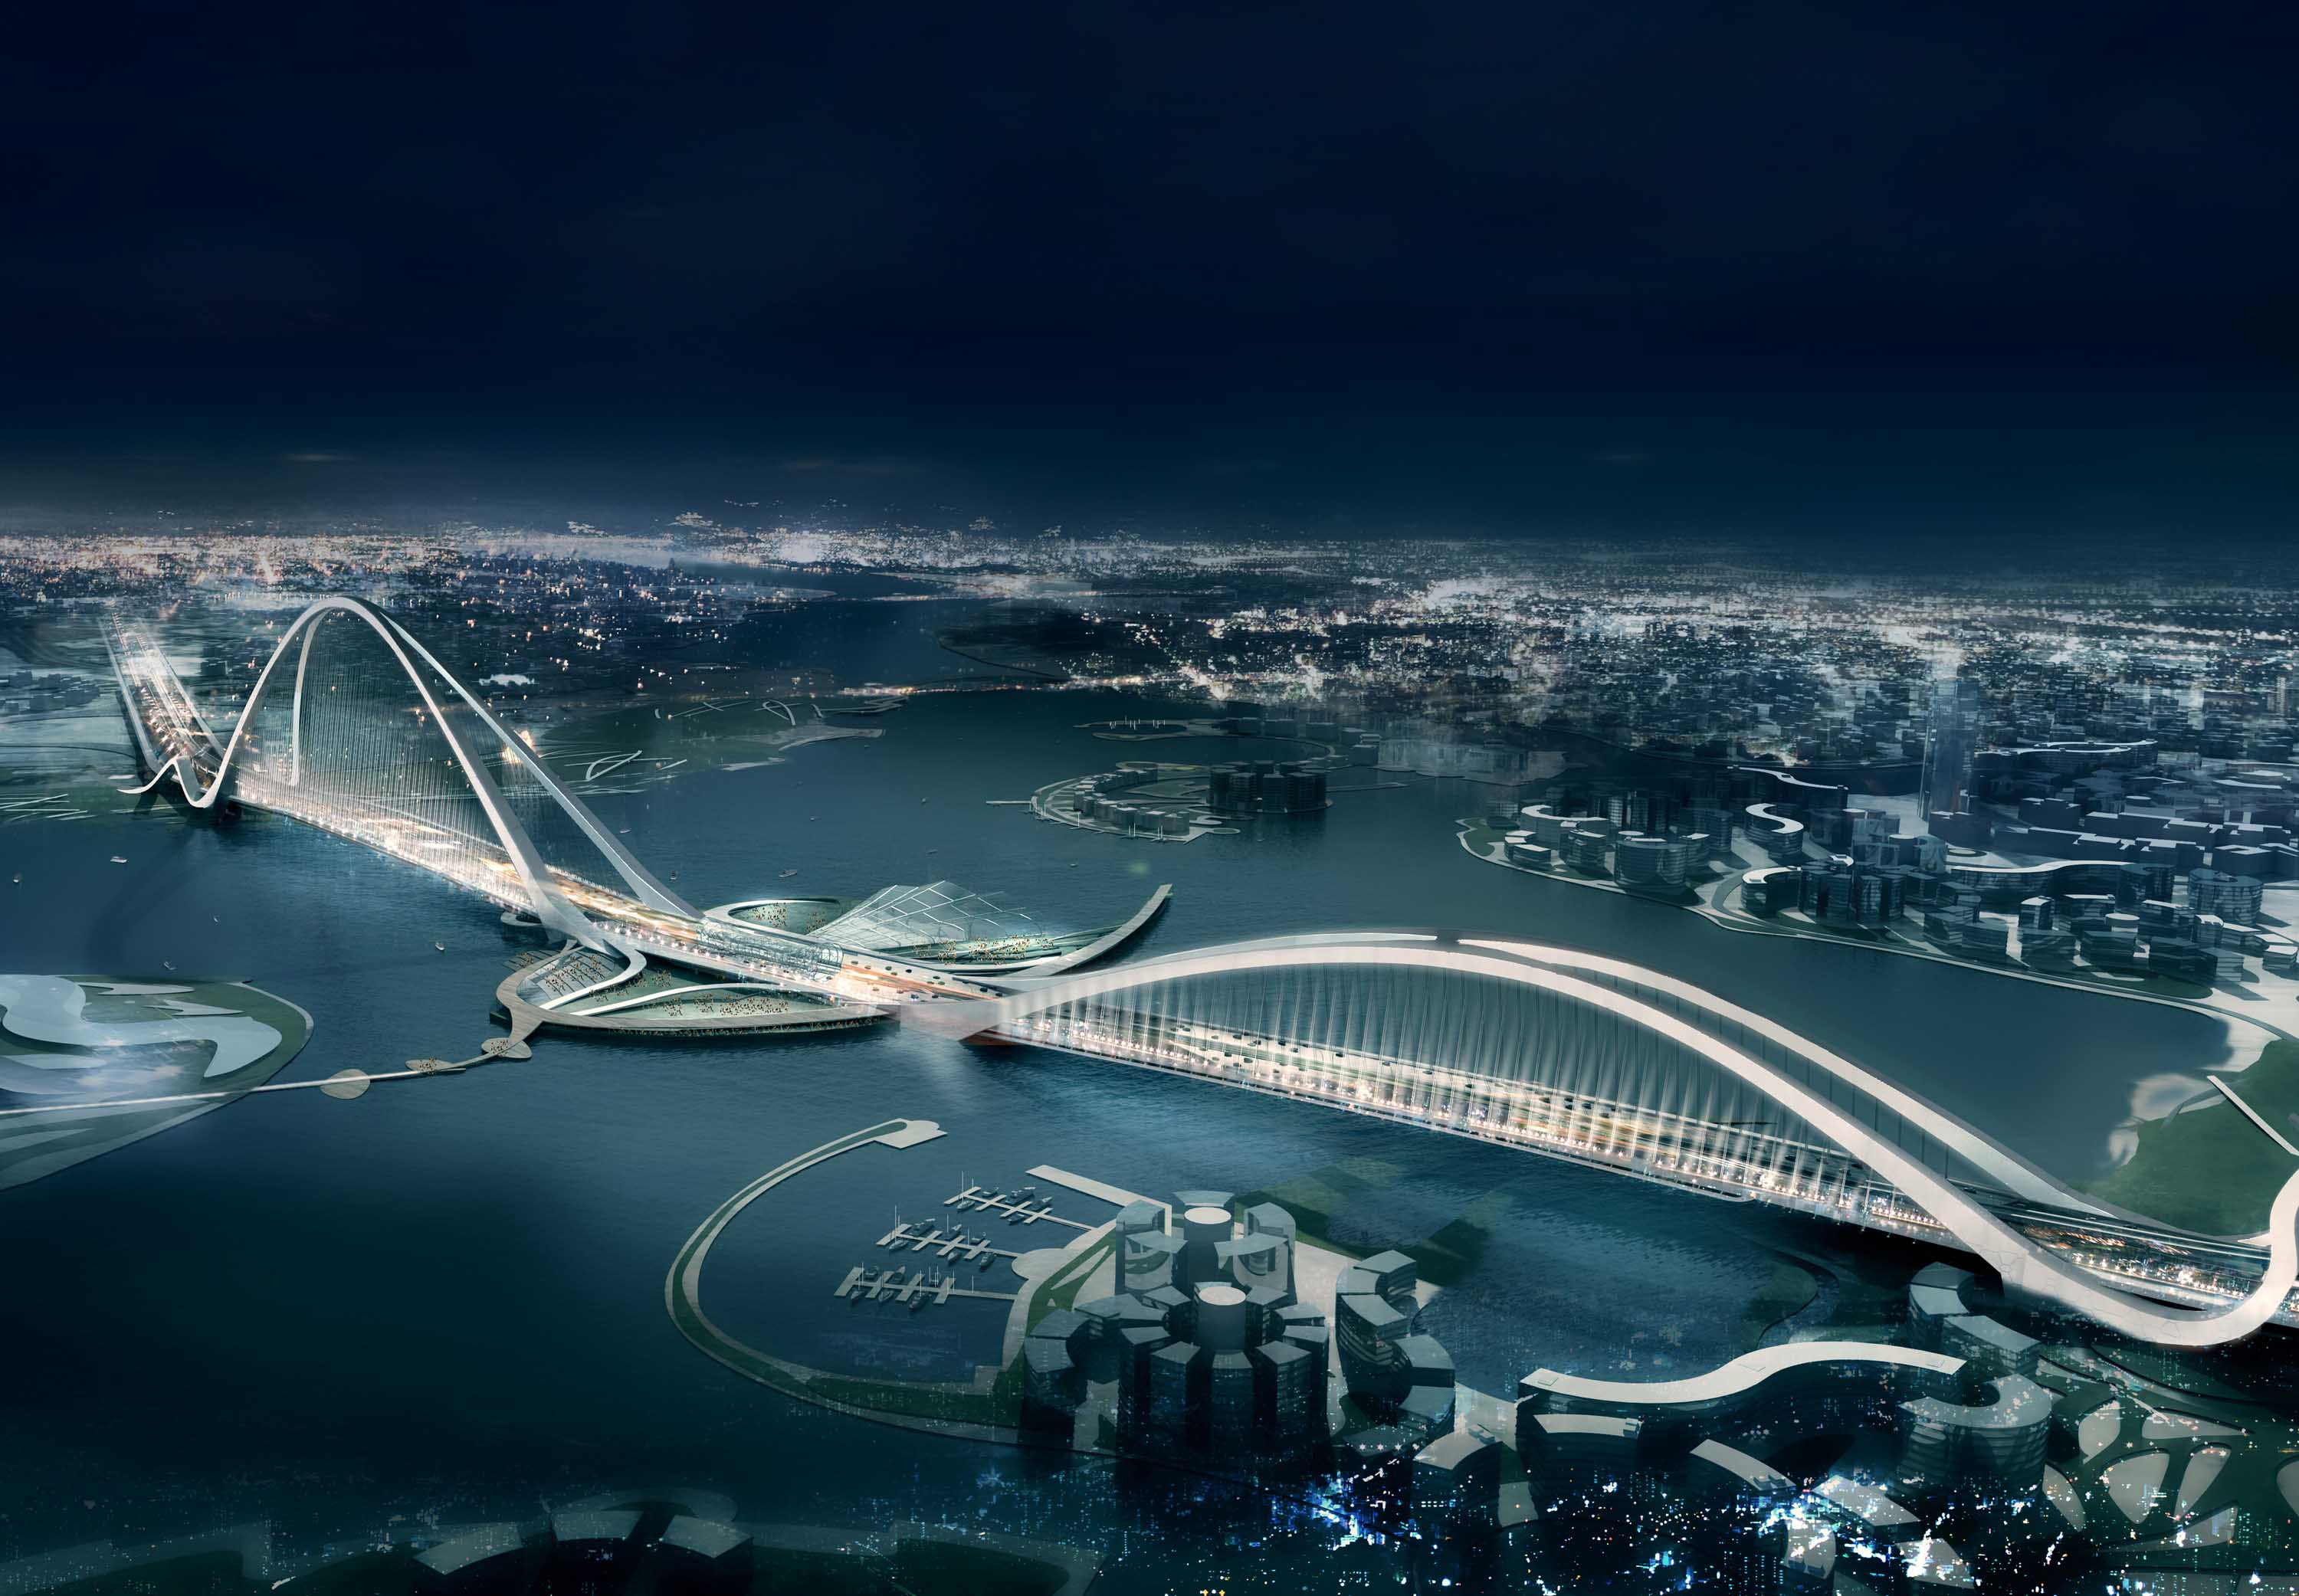 7 Buildings of the Future in Dubai Sheikh Rashid bin Saeed Crossing dubai